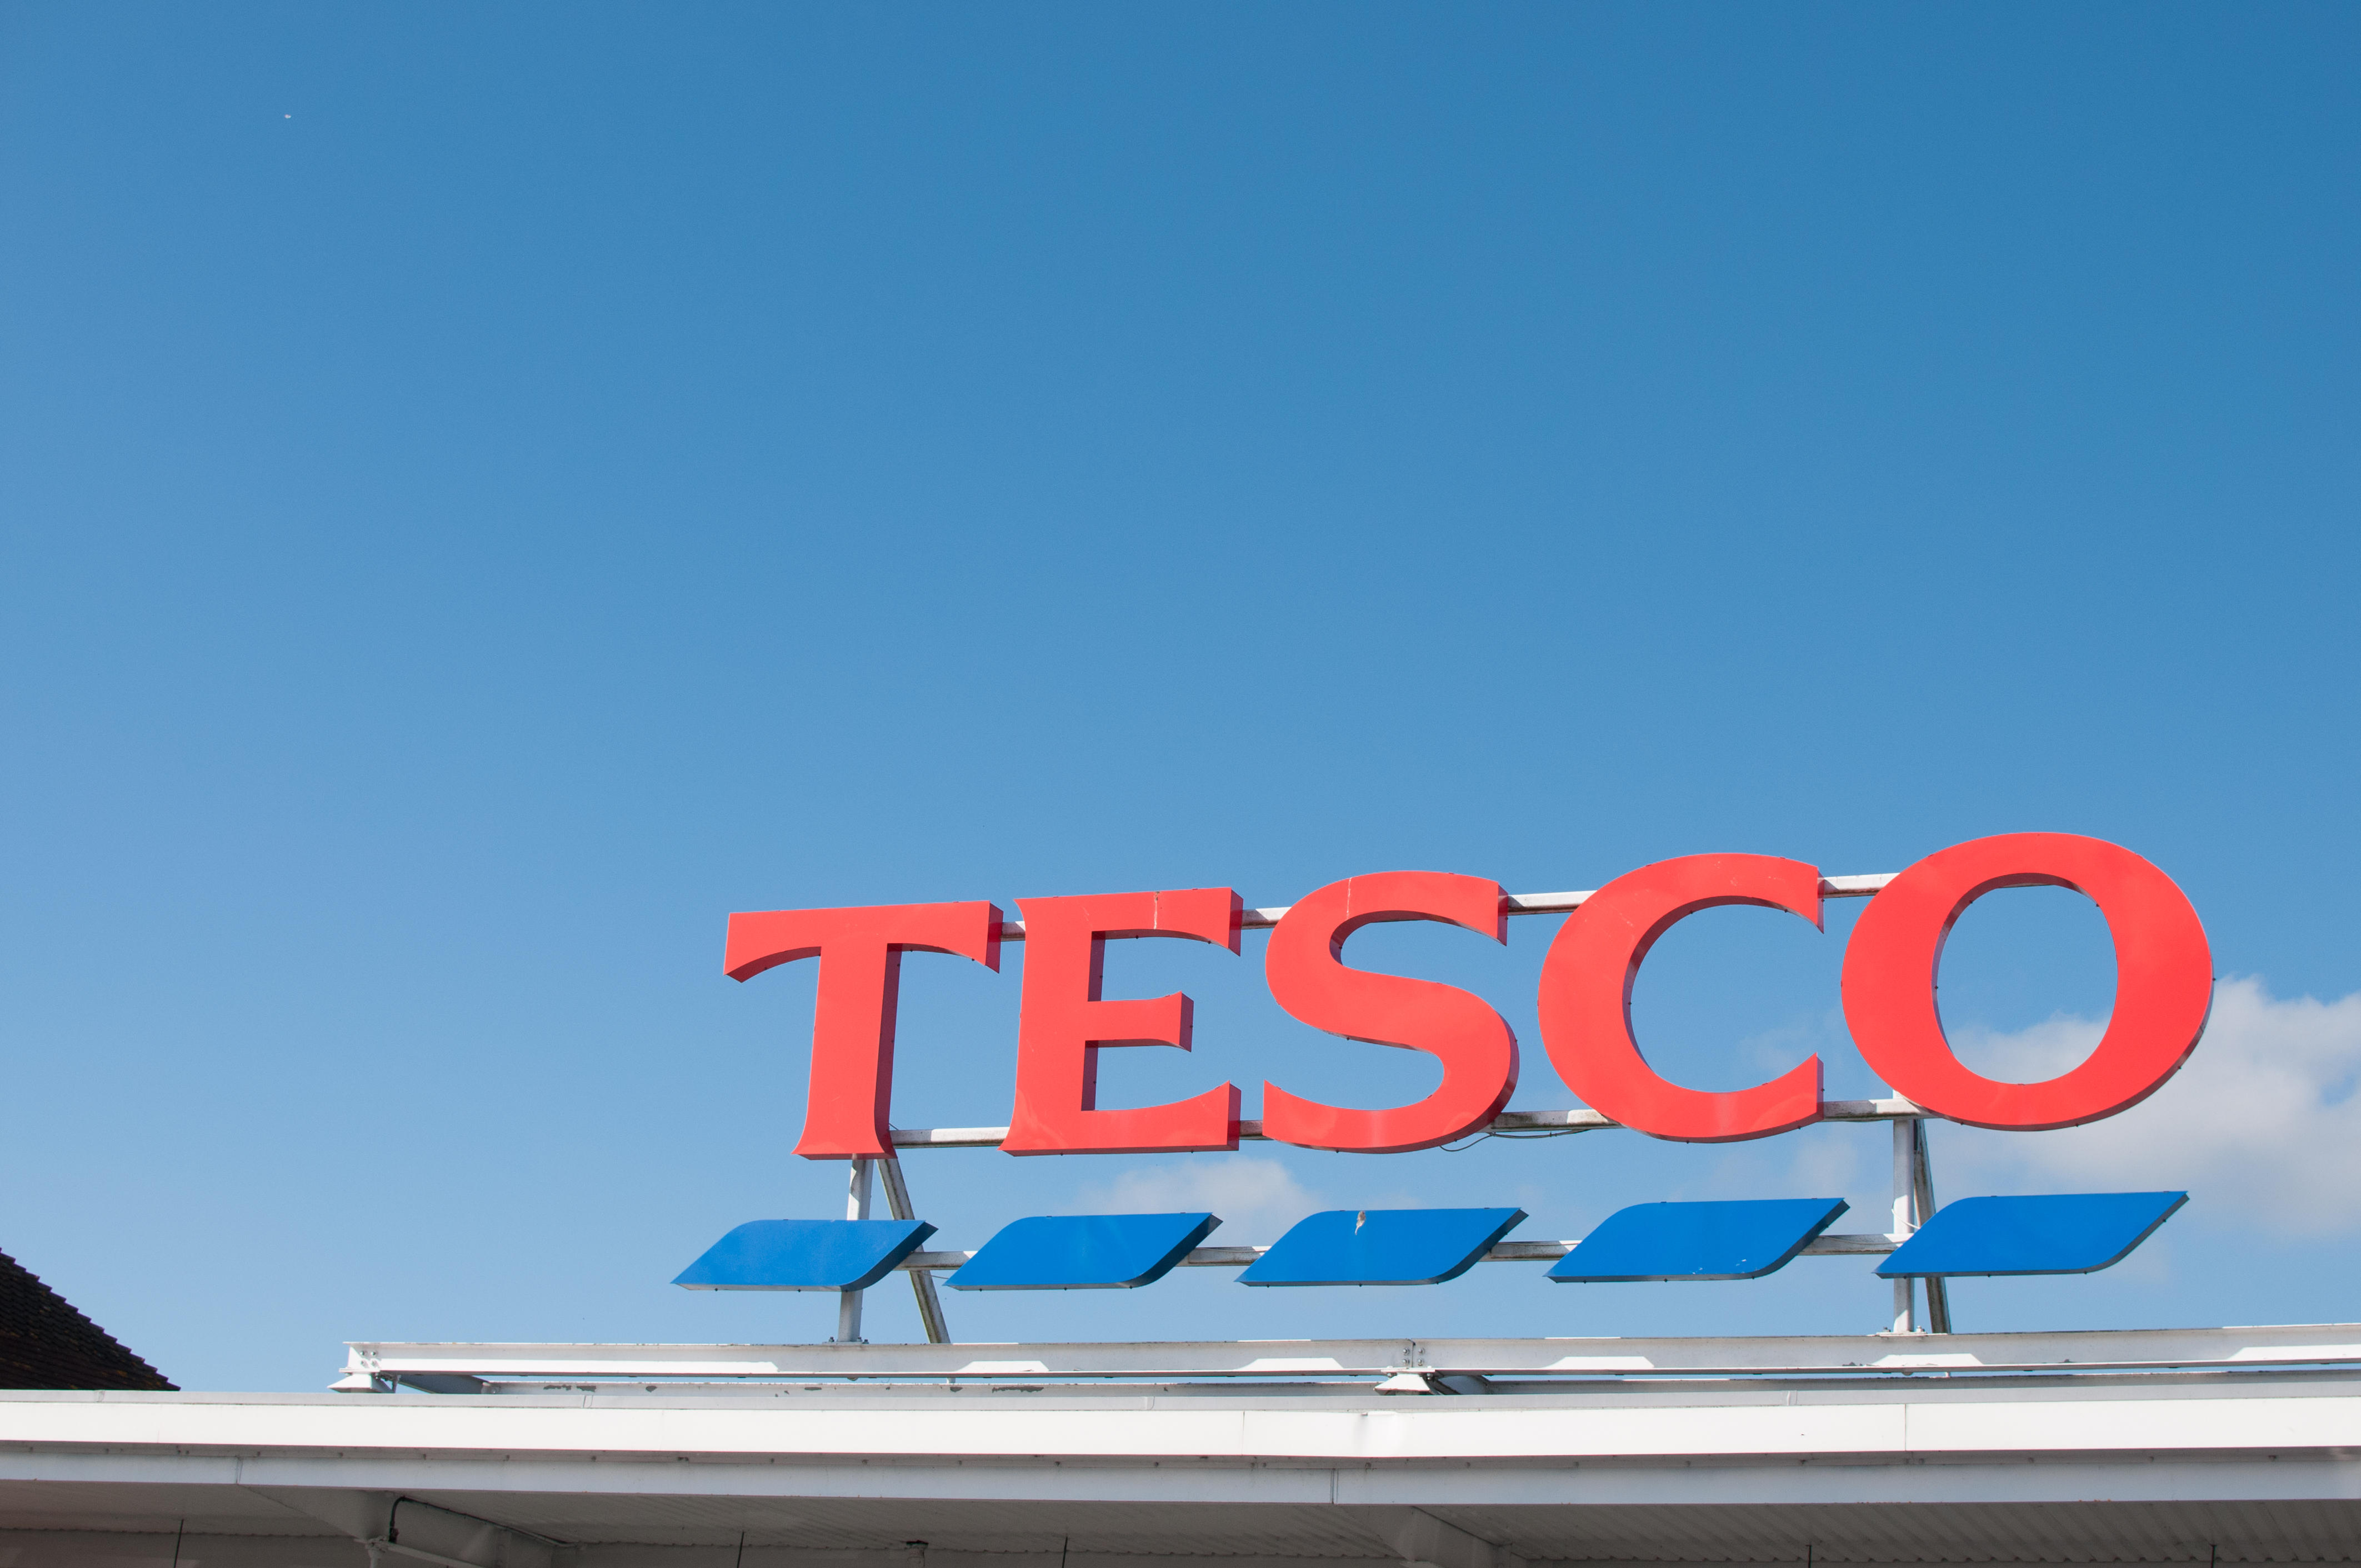 These are the best deals to look out for at Tesco this year